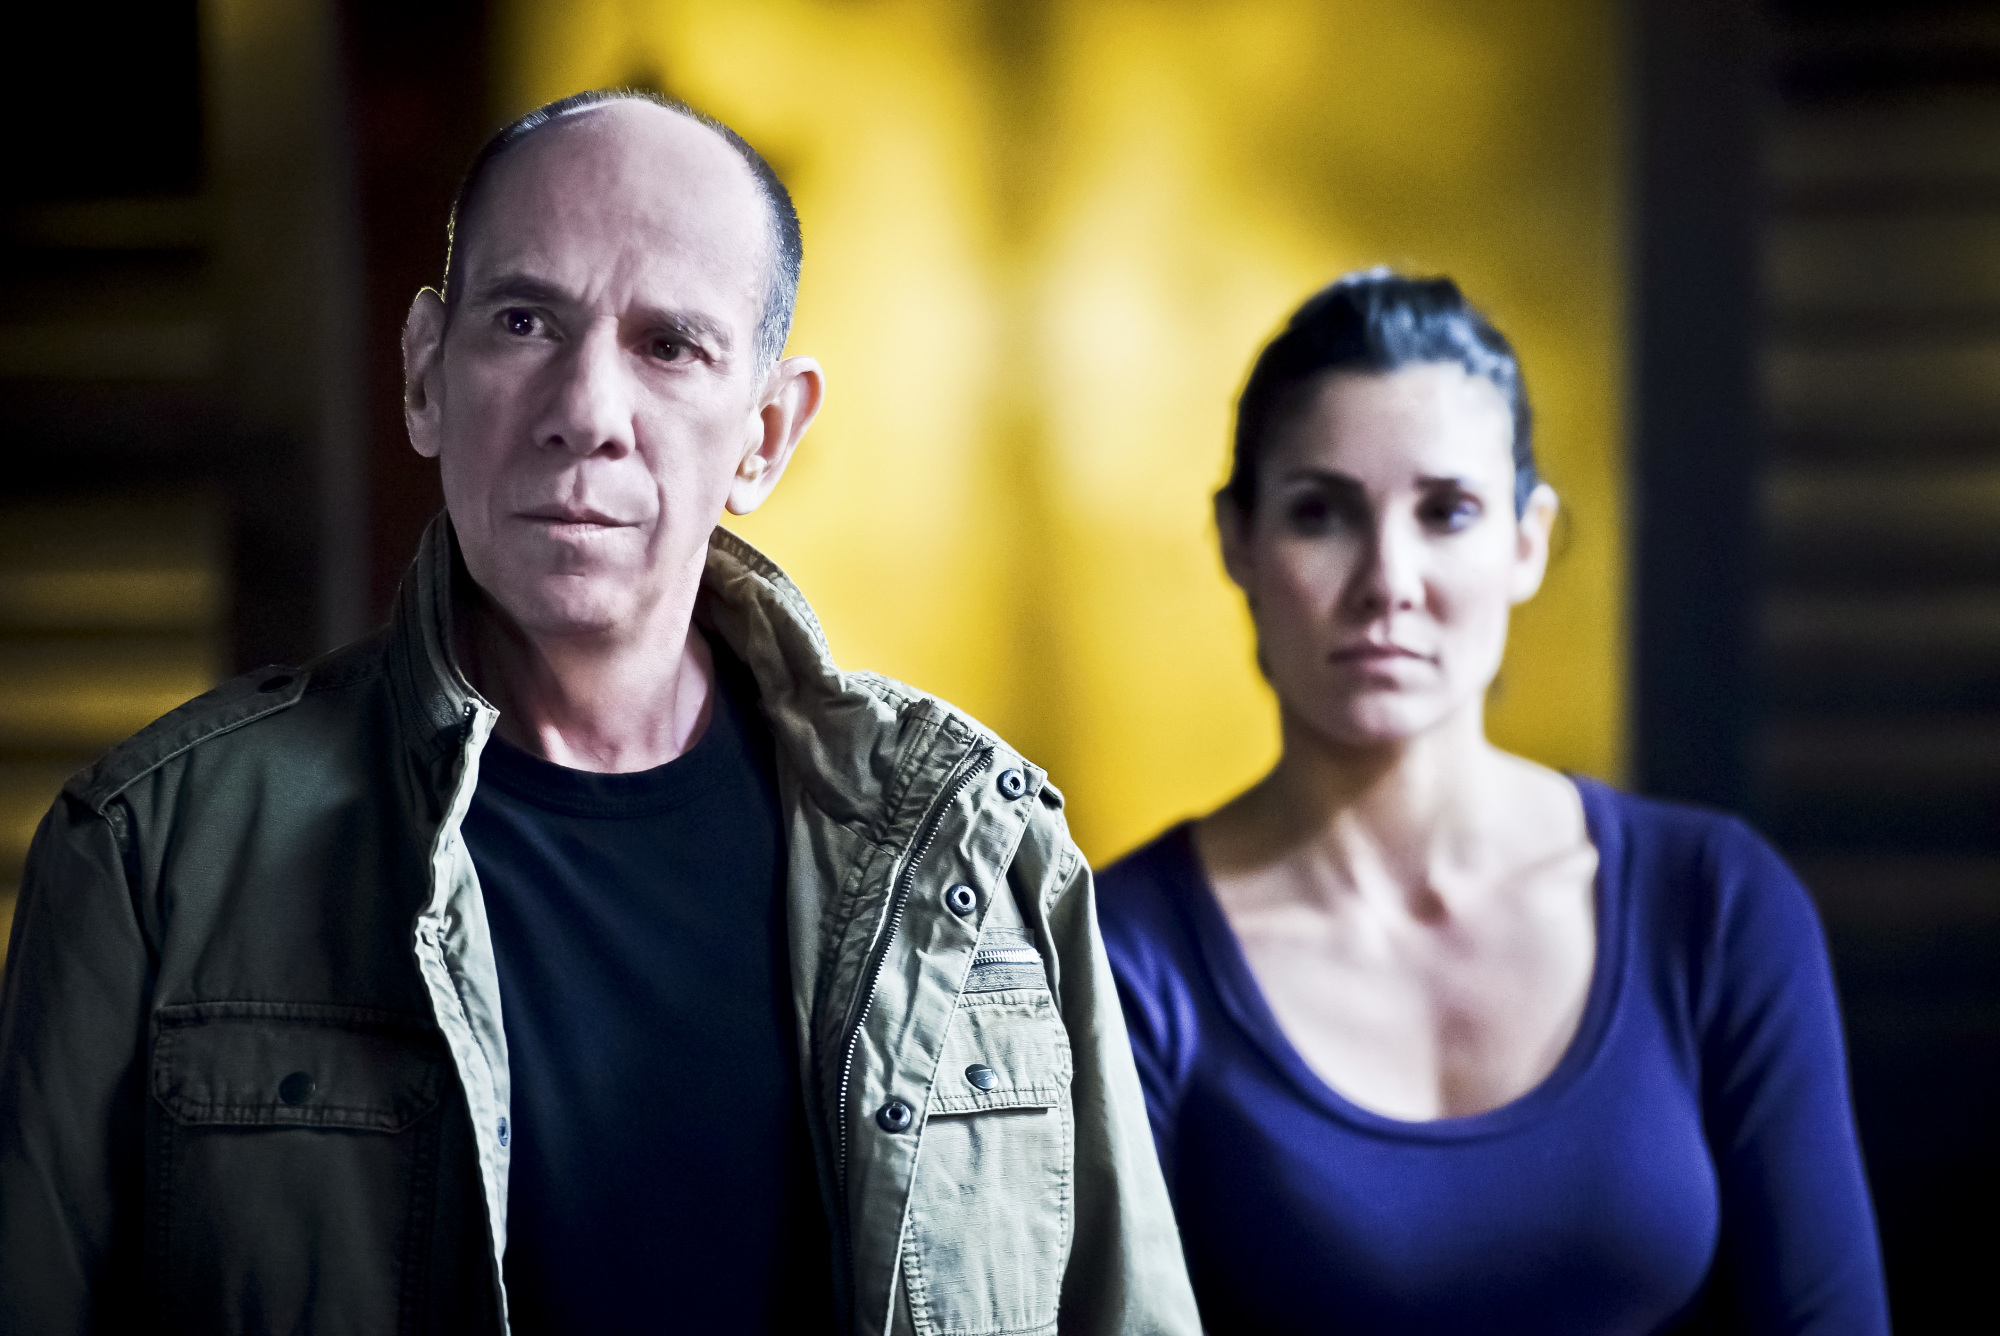 Miguel Ferrer as NCIS Assistant Director Owen Granger and Daniela Ruah as Special Agent Kensi Blye